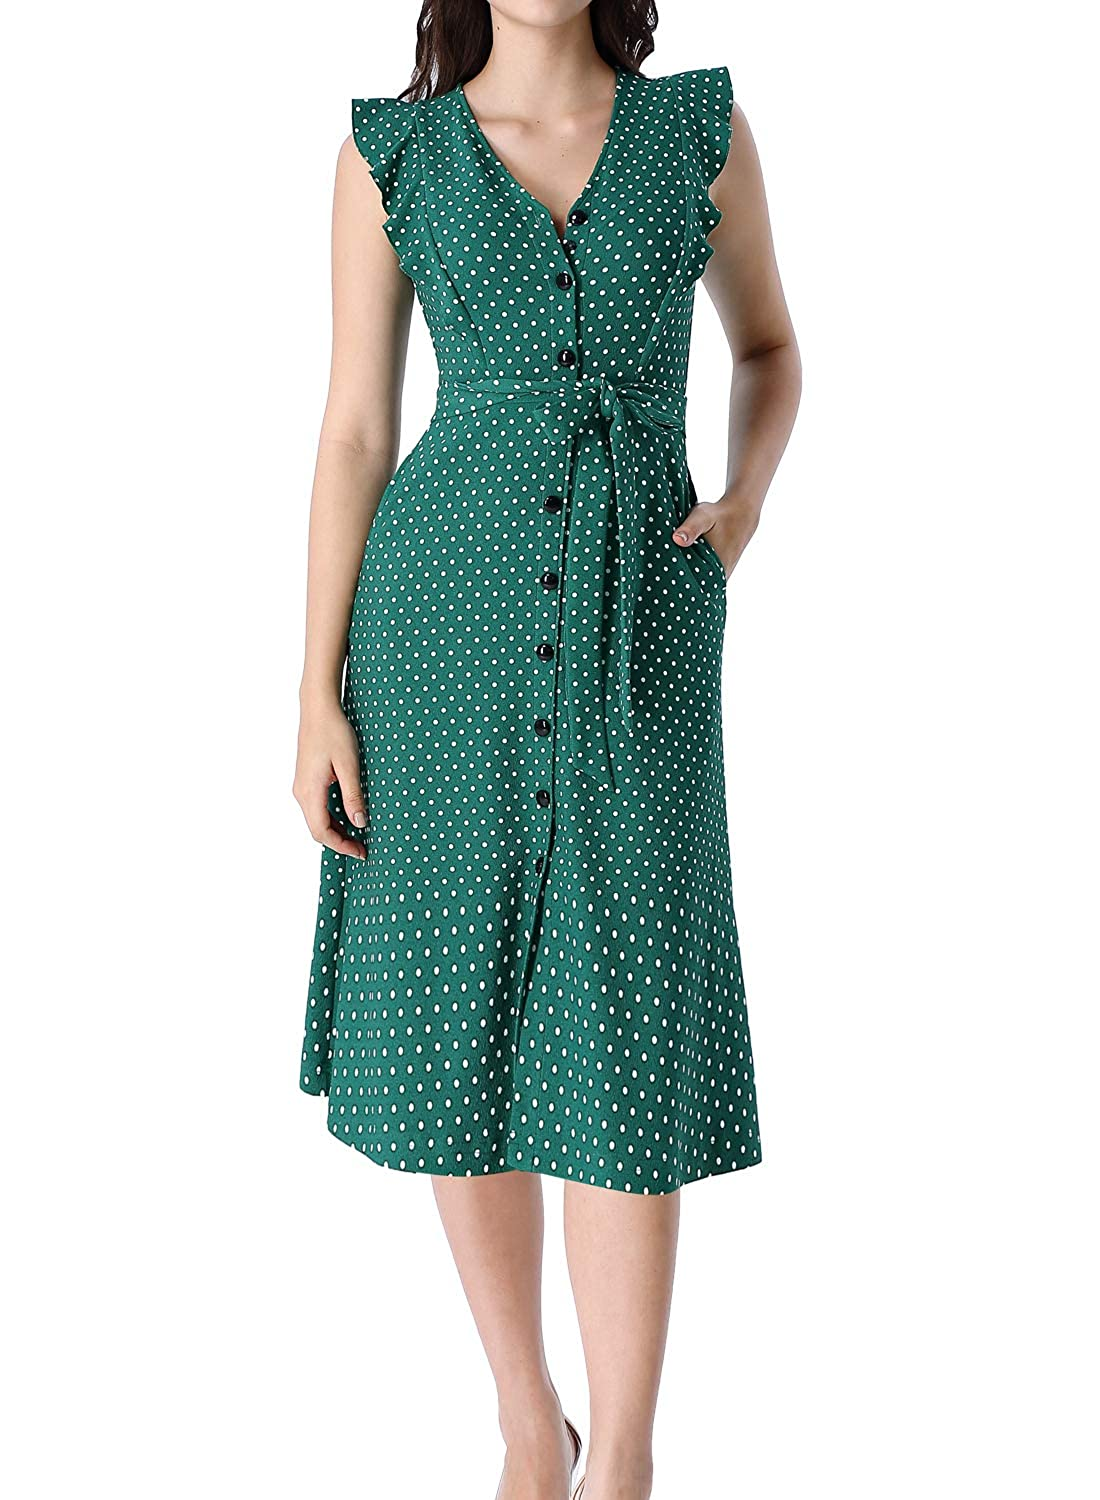 500 Vintage Style Dresses for Sale | Vintage Inspired Dresses VFSHOW Womens Ruffle Pockets Work Office Business Casual Party A-Line Midi Dress $36.99 AT vintagedancer.com